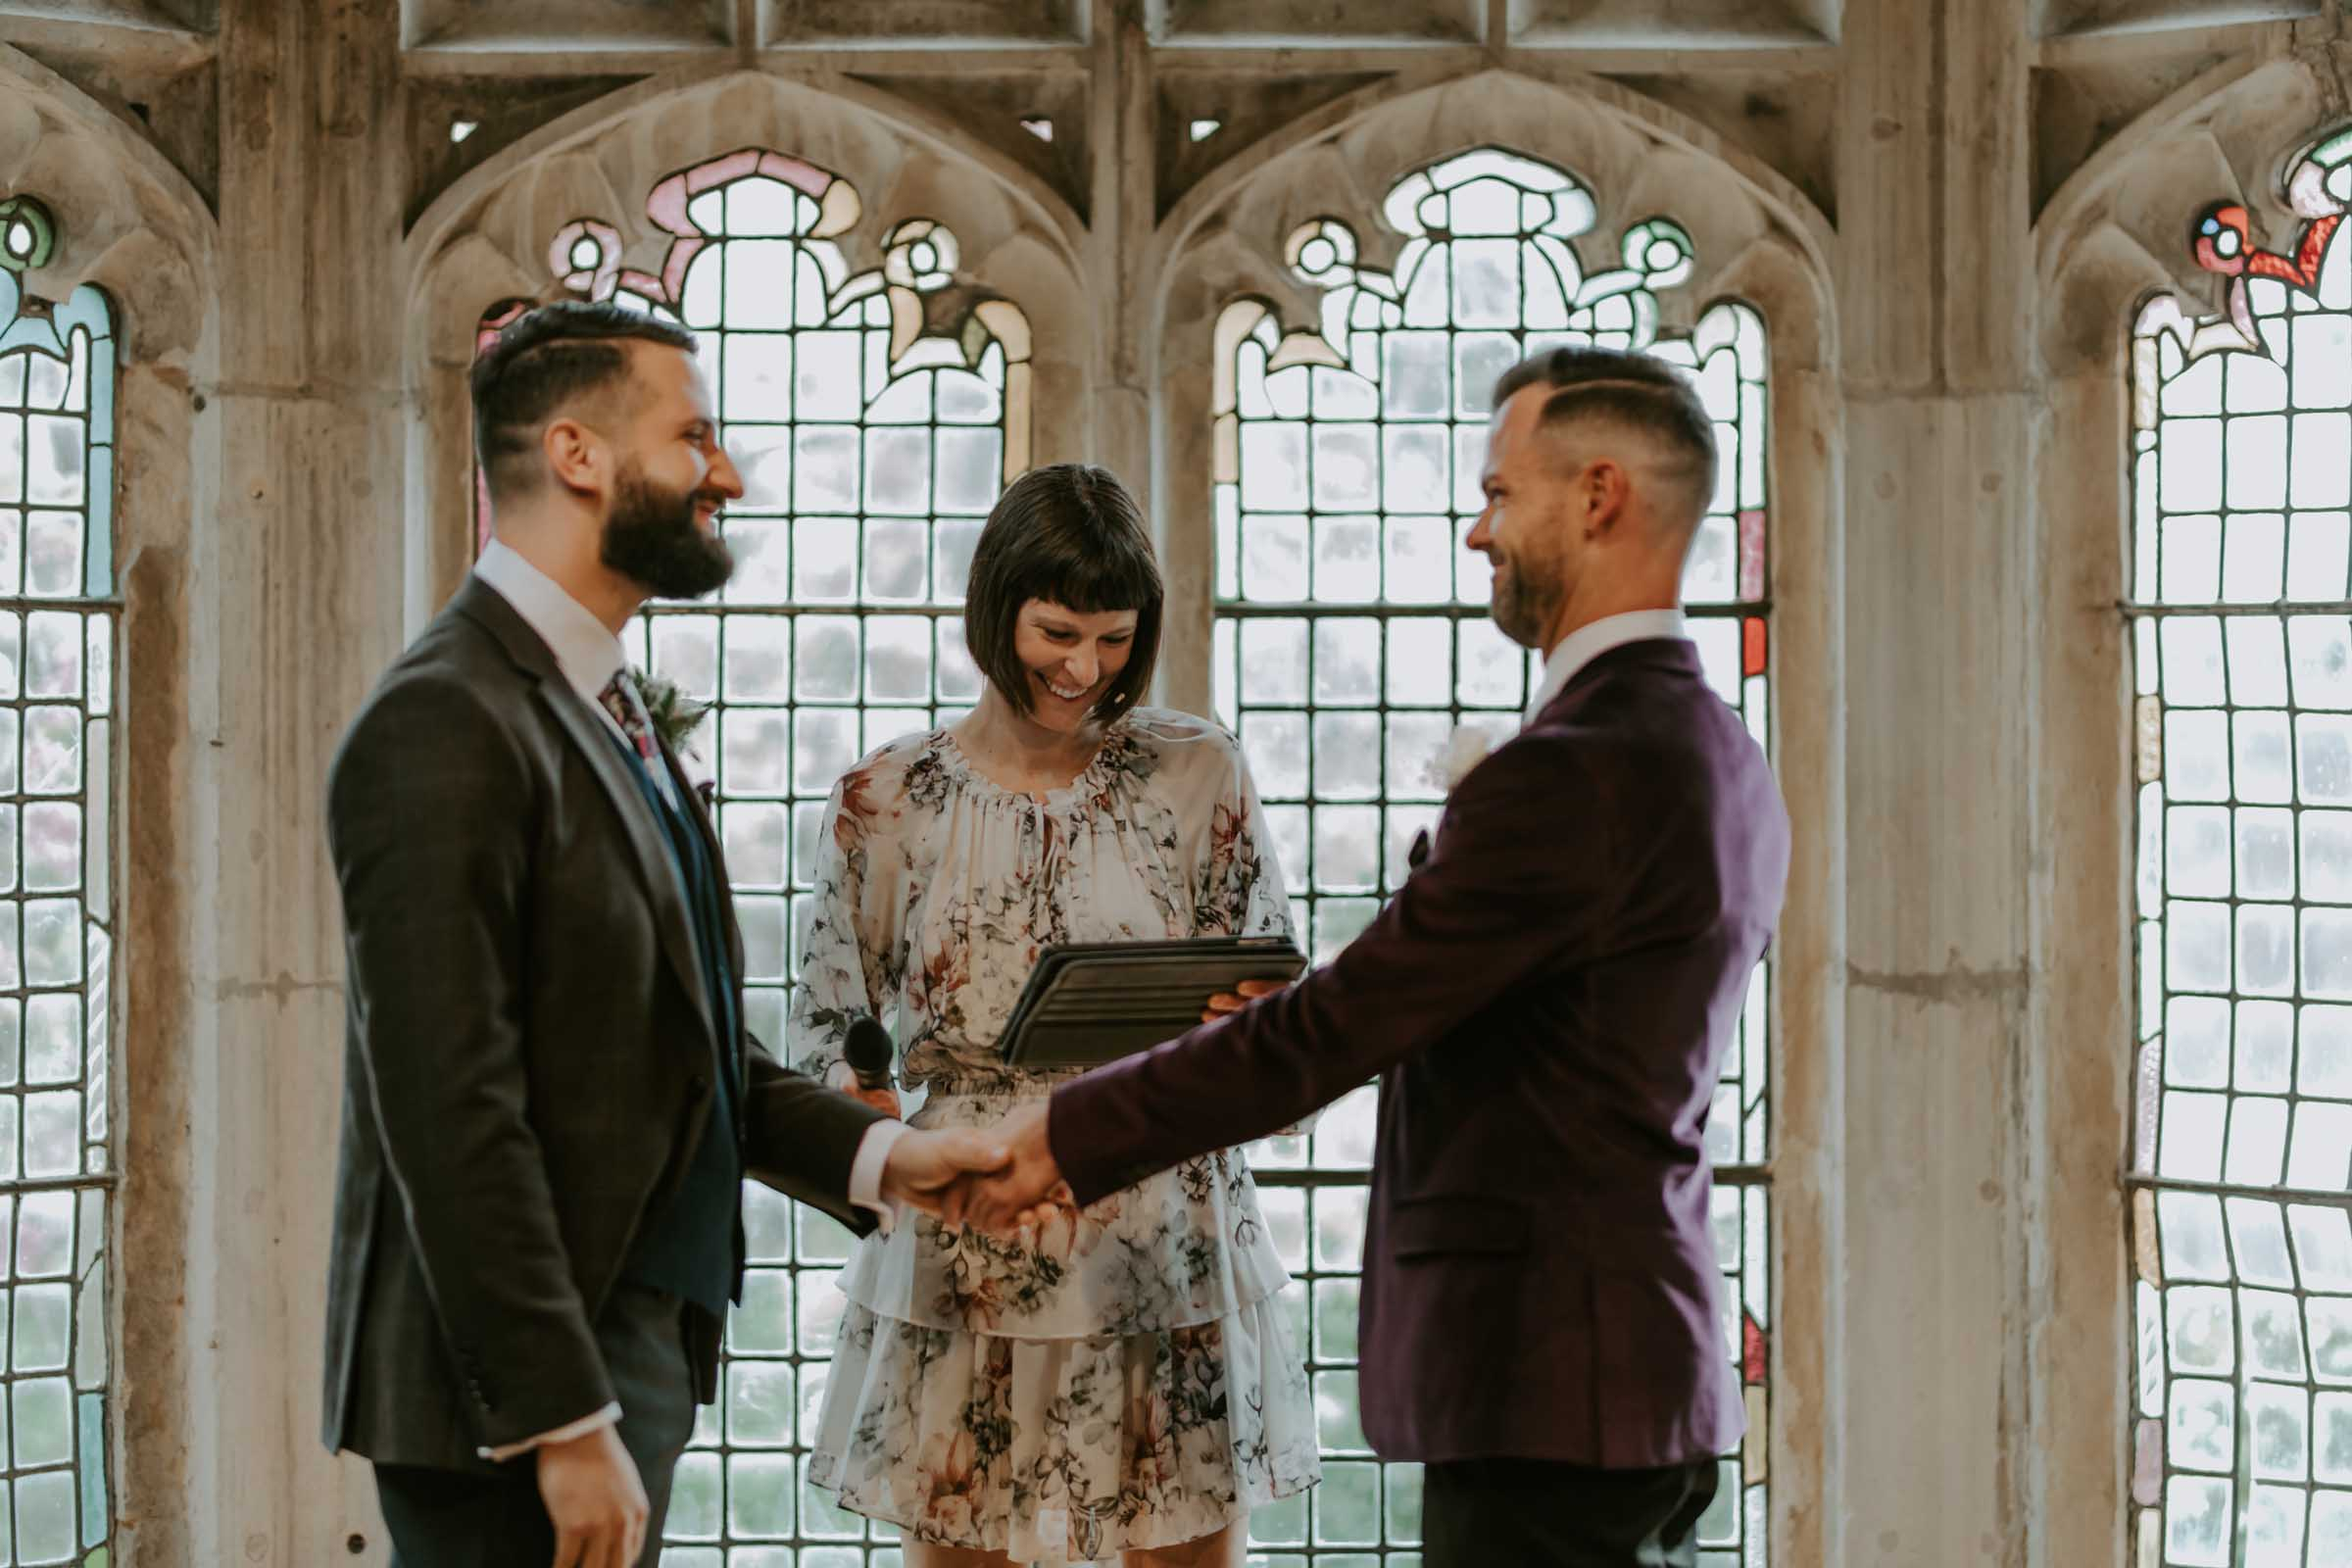 Celebrate With Hailey Melbourne Victoria LGBT+ gay lesbian Same-sex wedding elopement celebrant Dancing With Her (1)